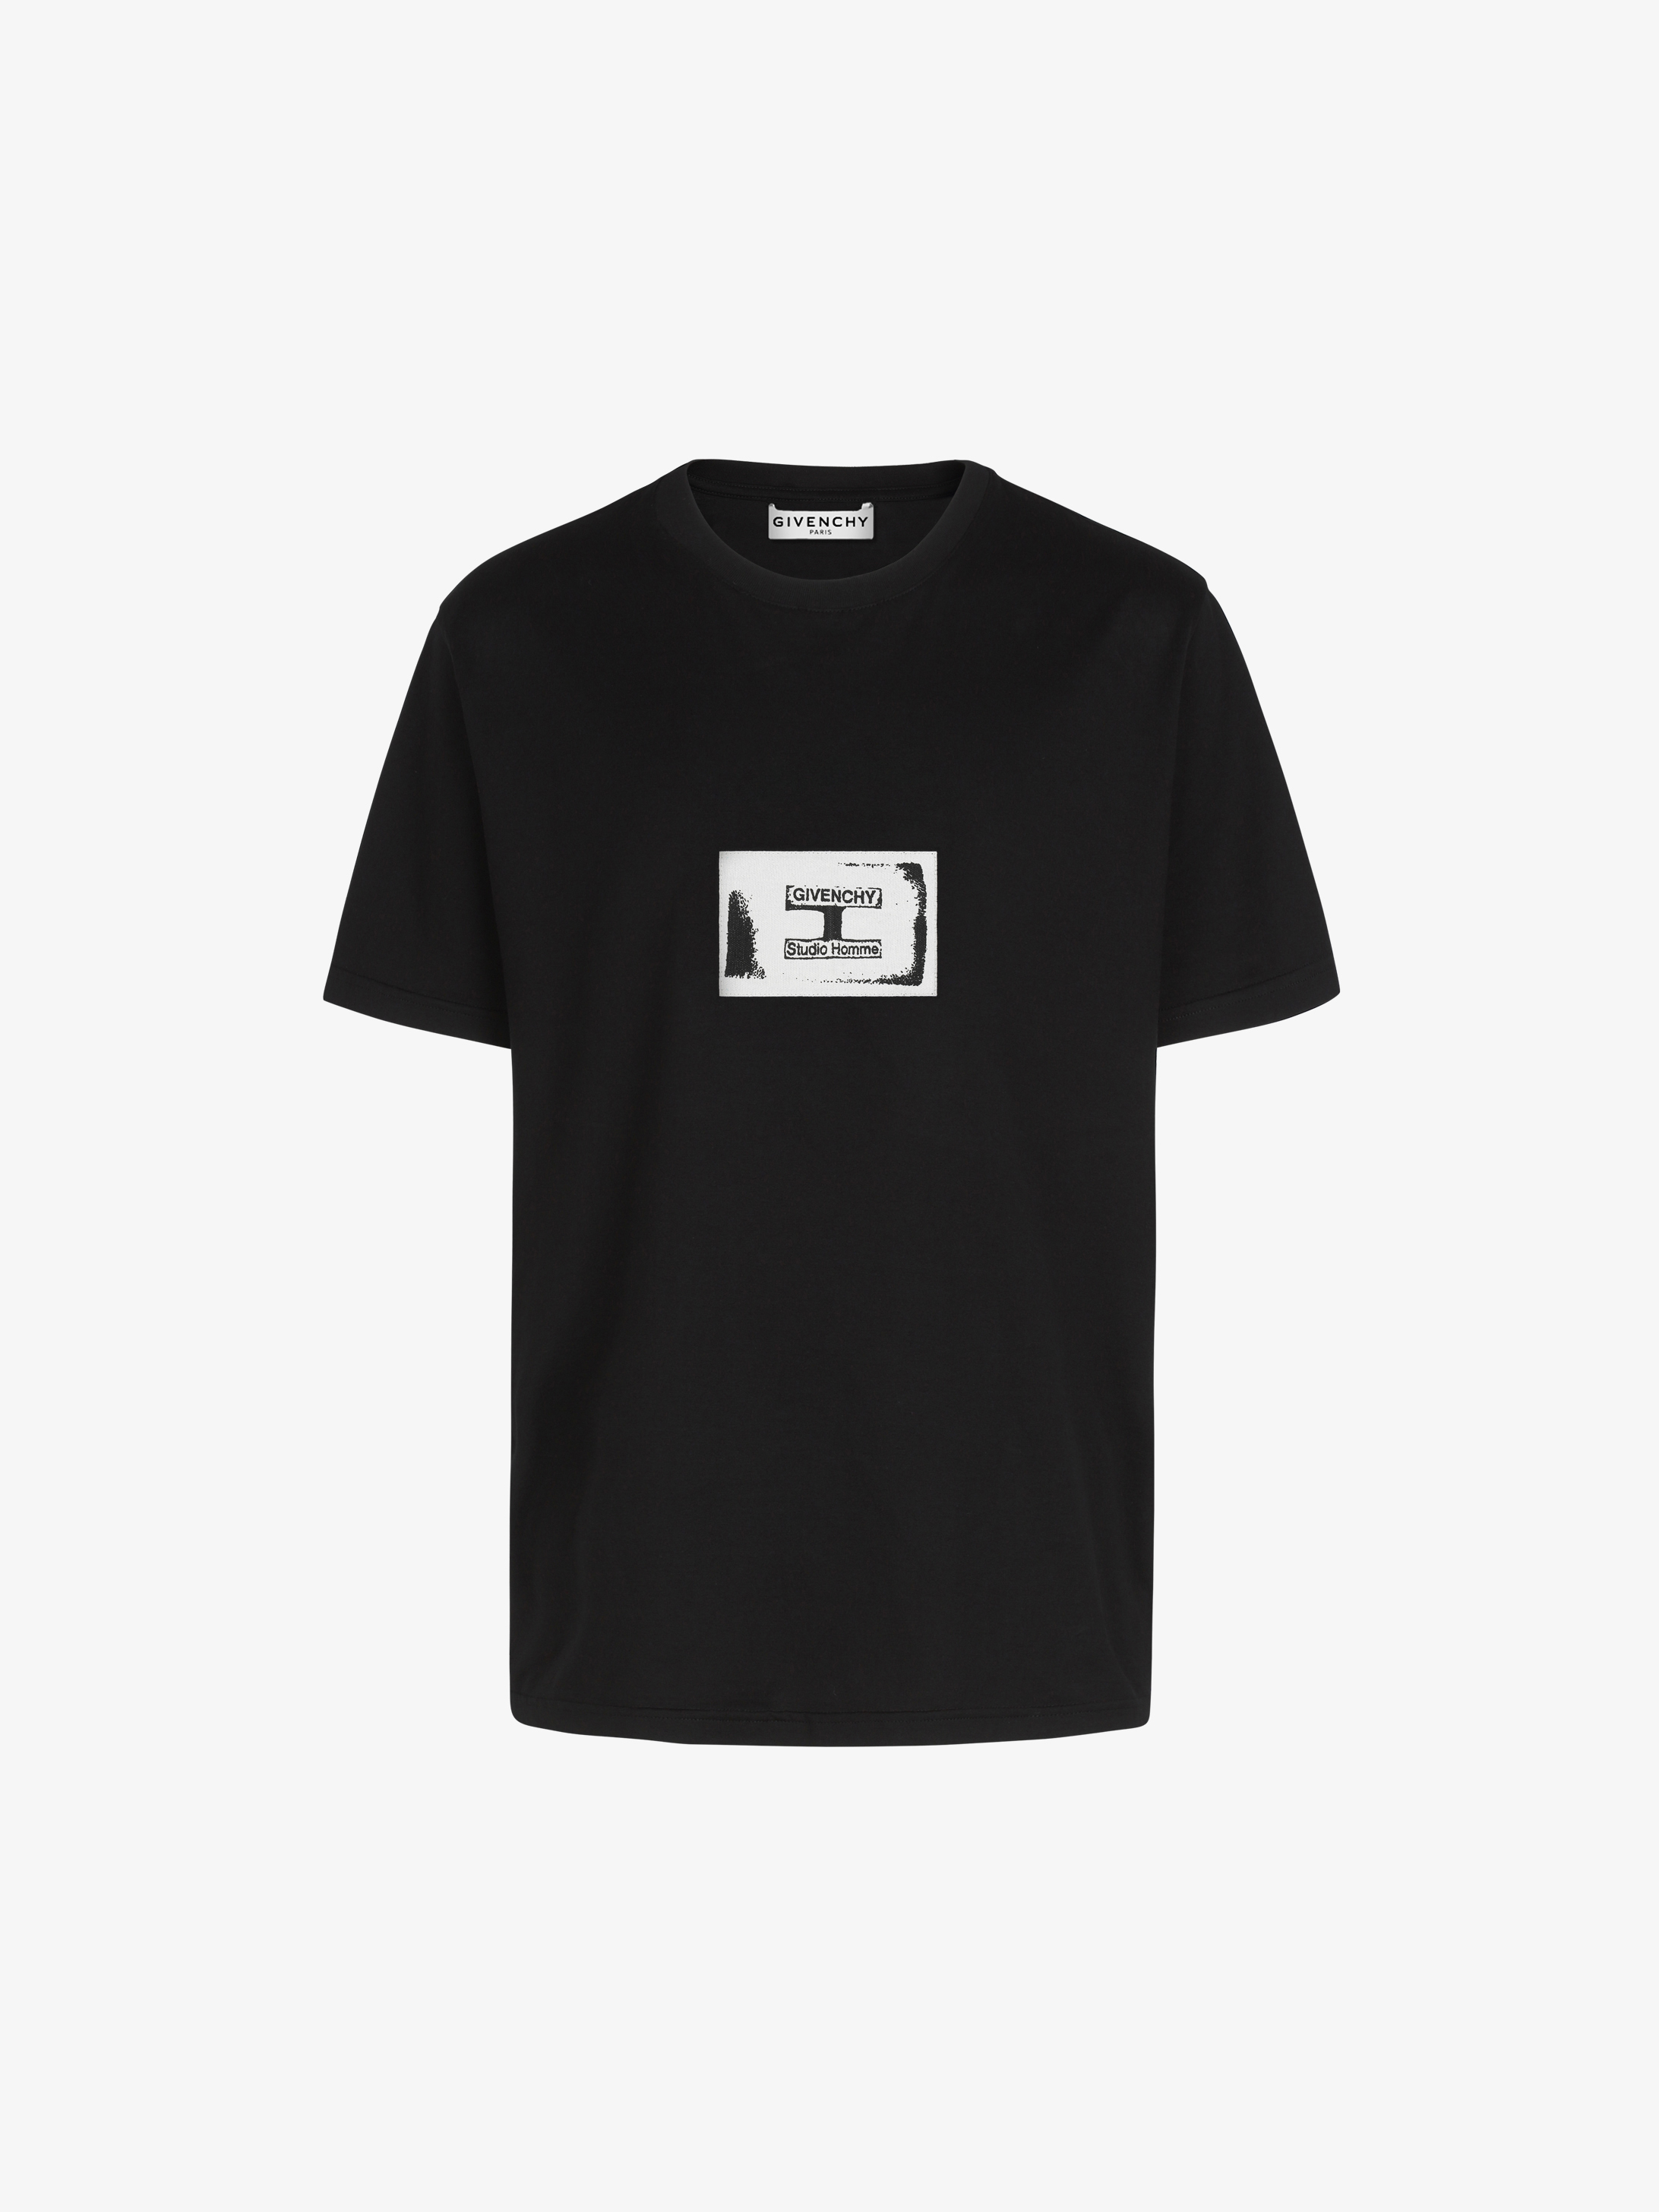 T-shirt GIVENCHY Studio Homme